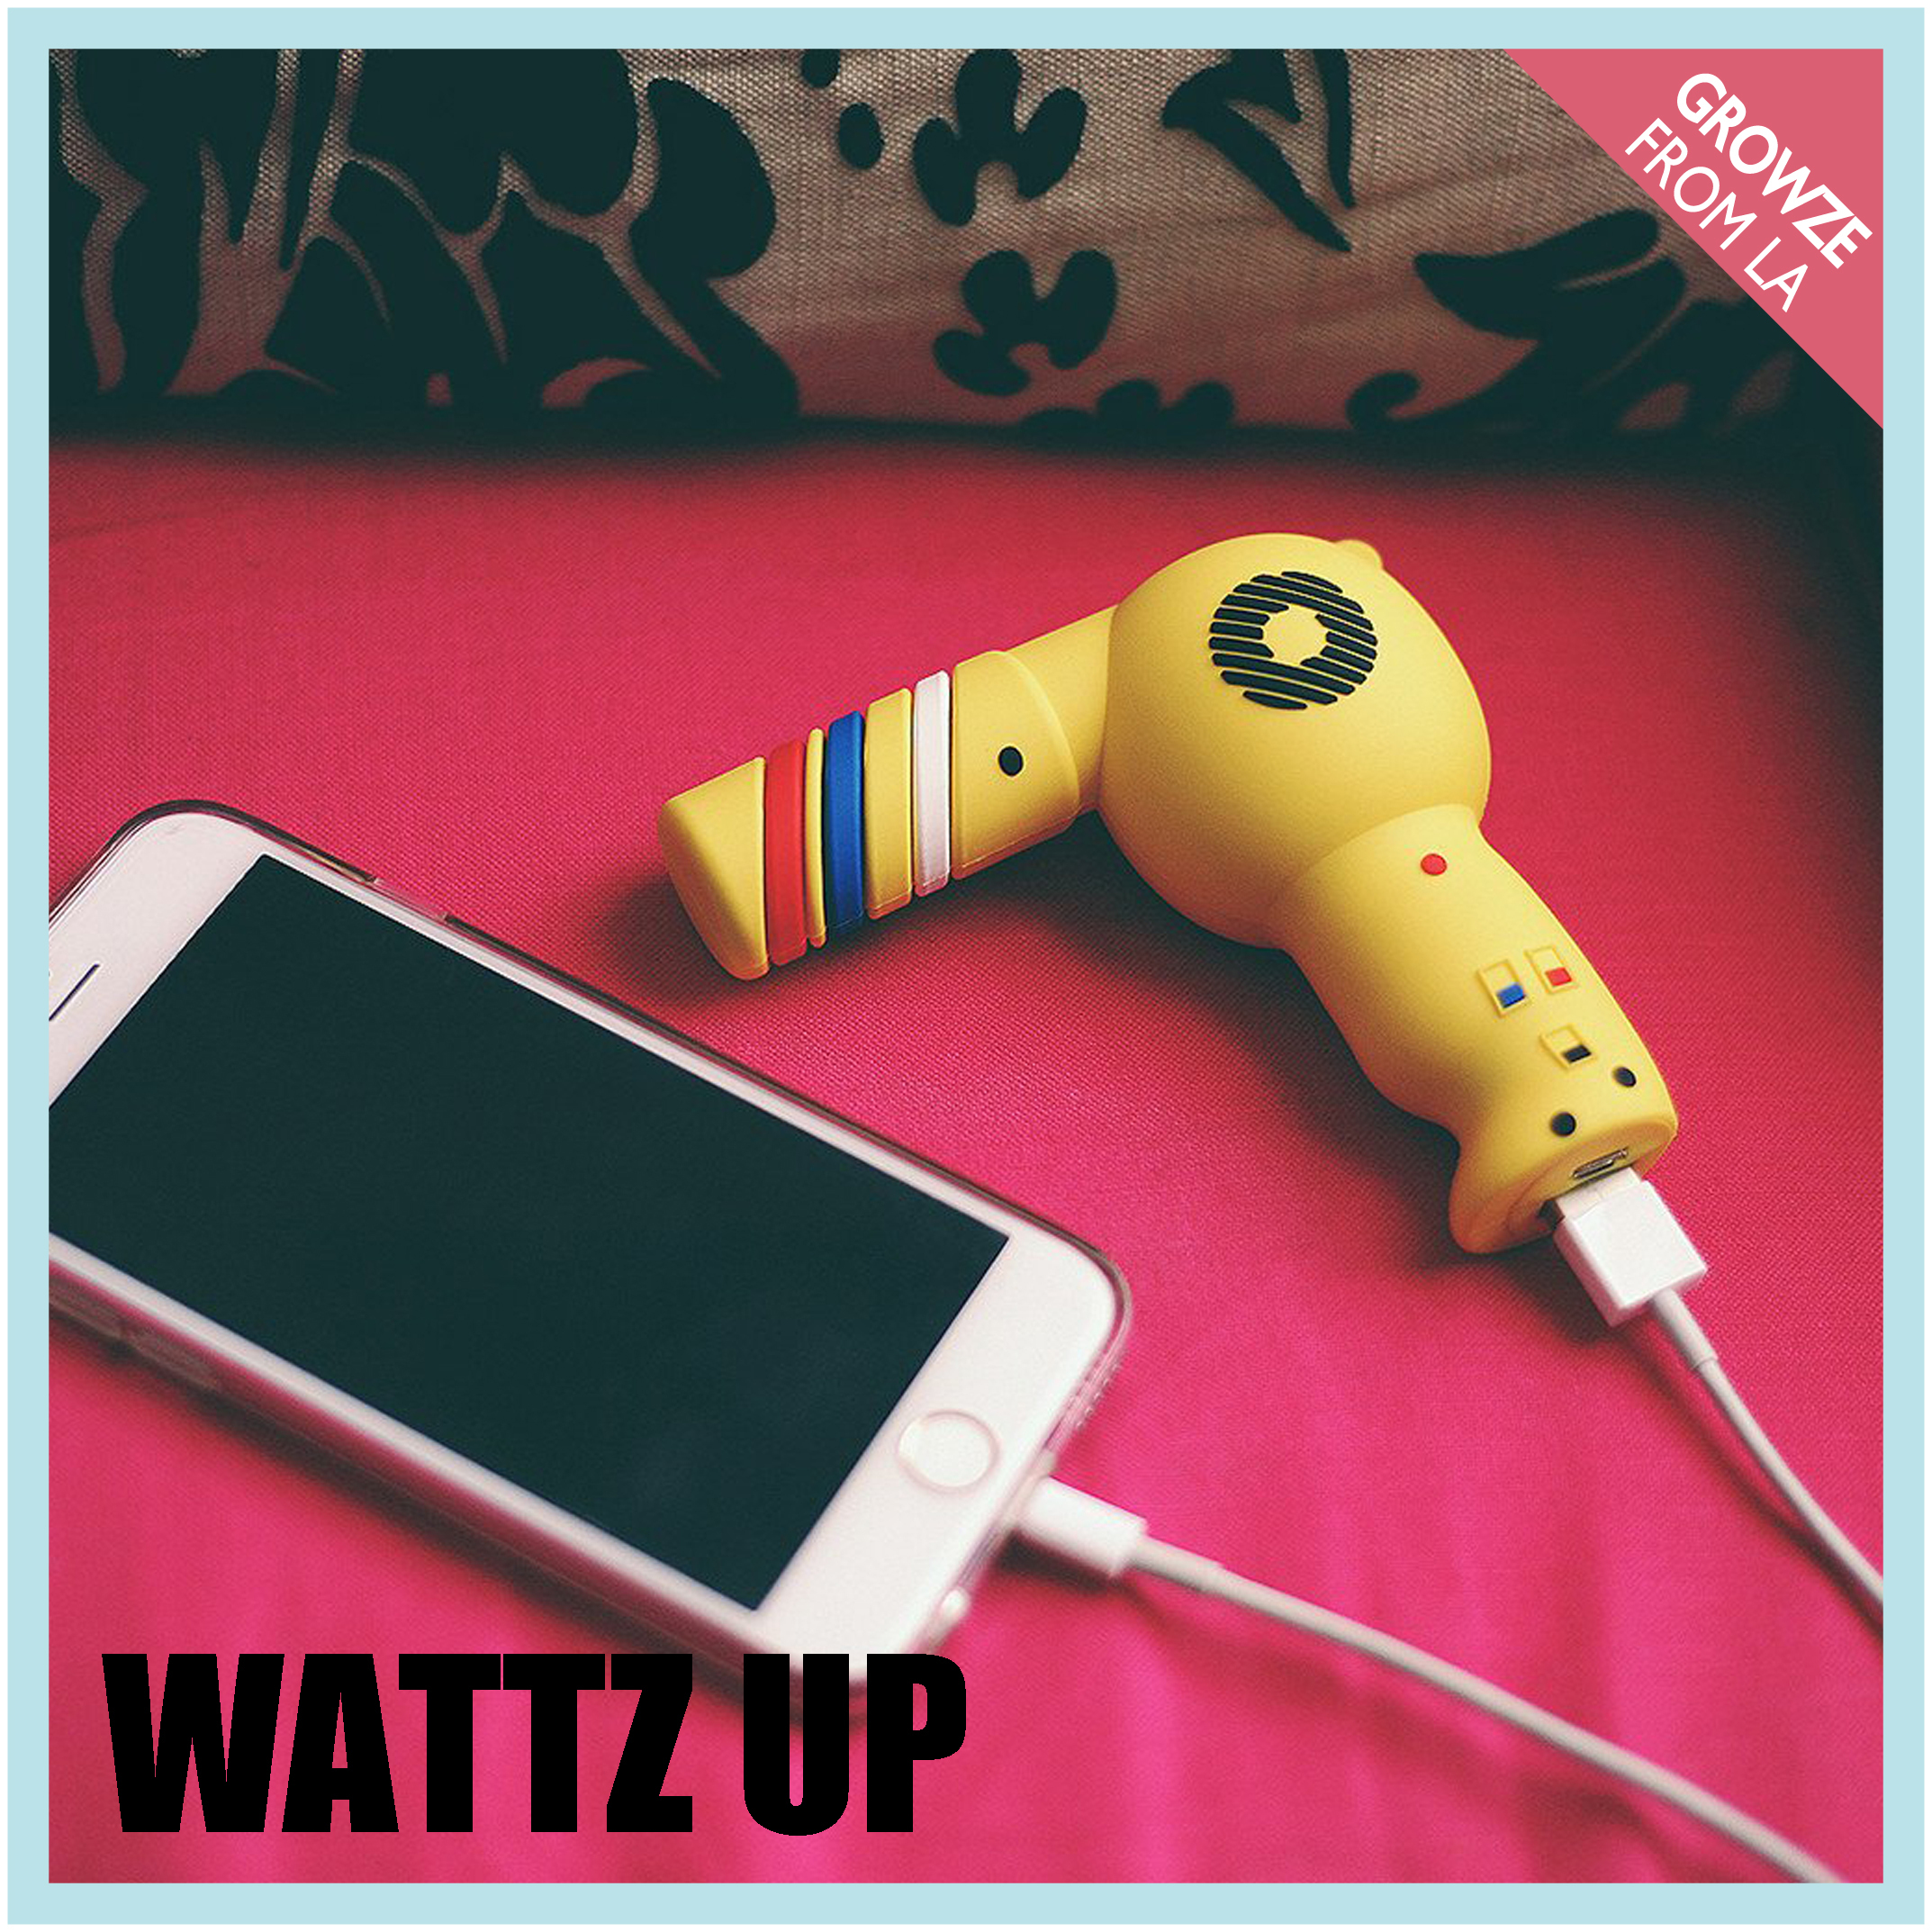 【WattzUp Power】ワッツアップパワー BLOW ME CHARGER黄 充電器